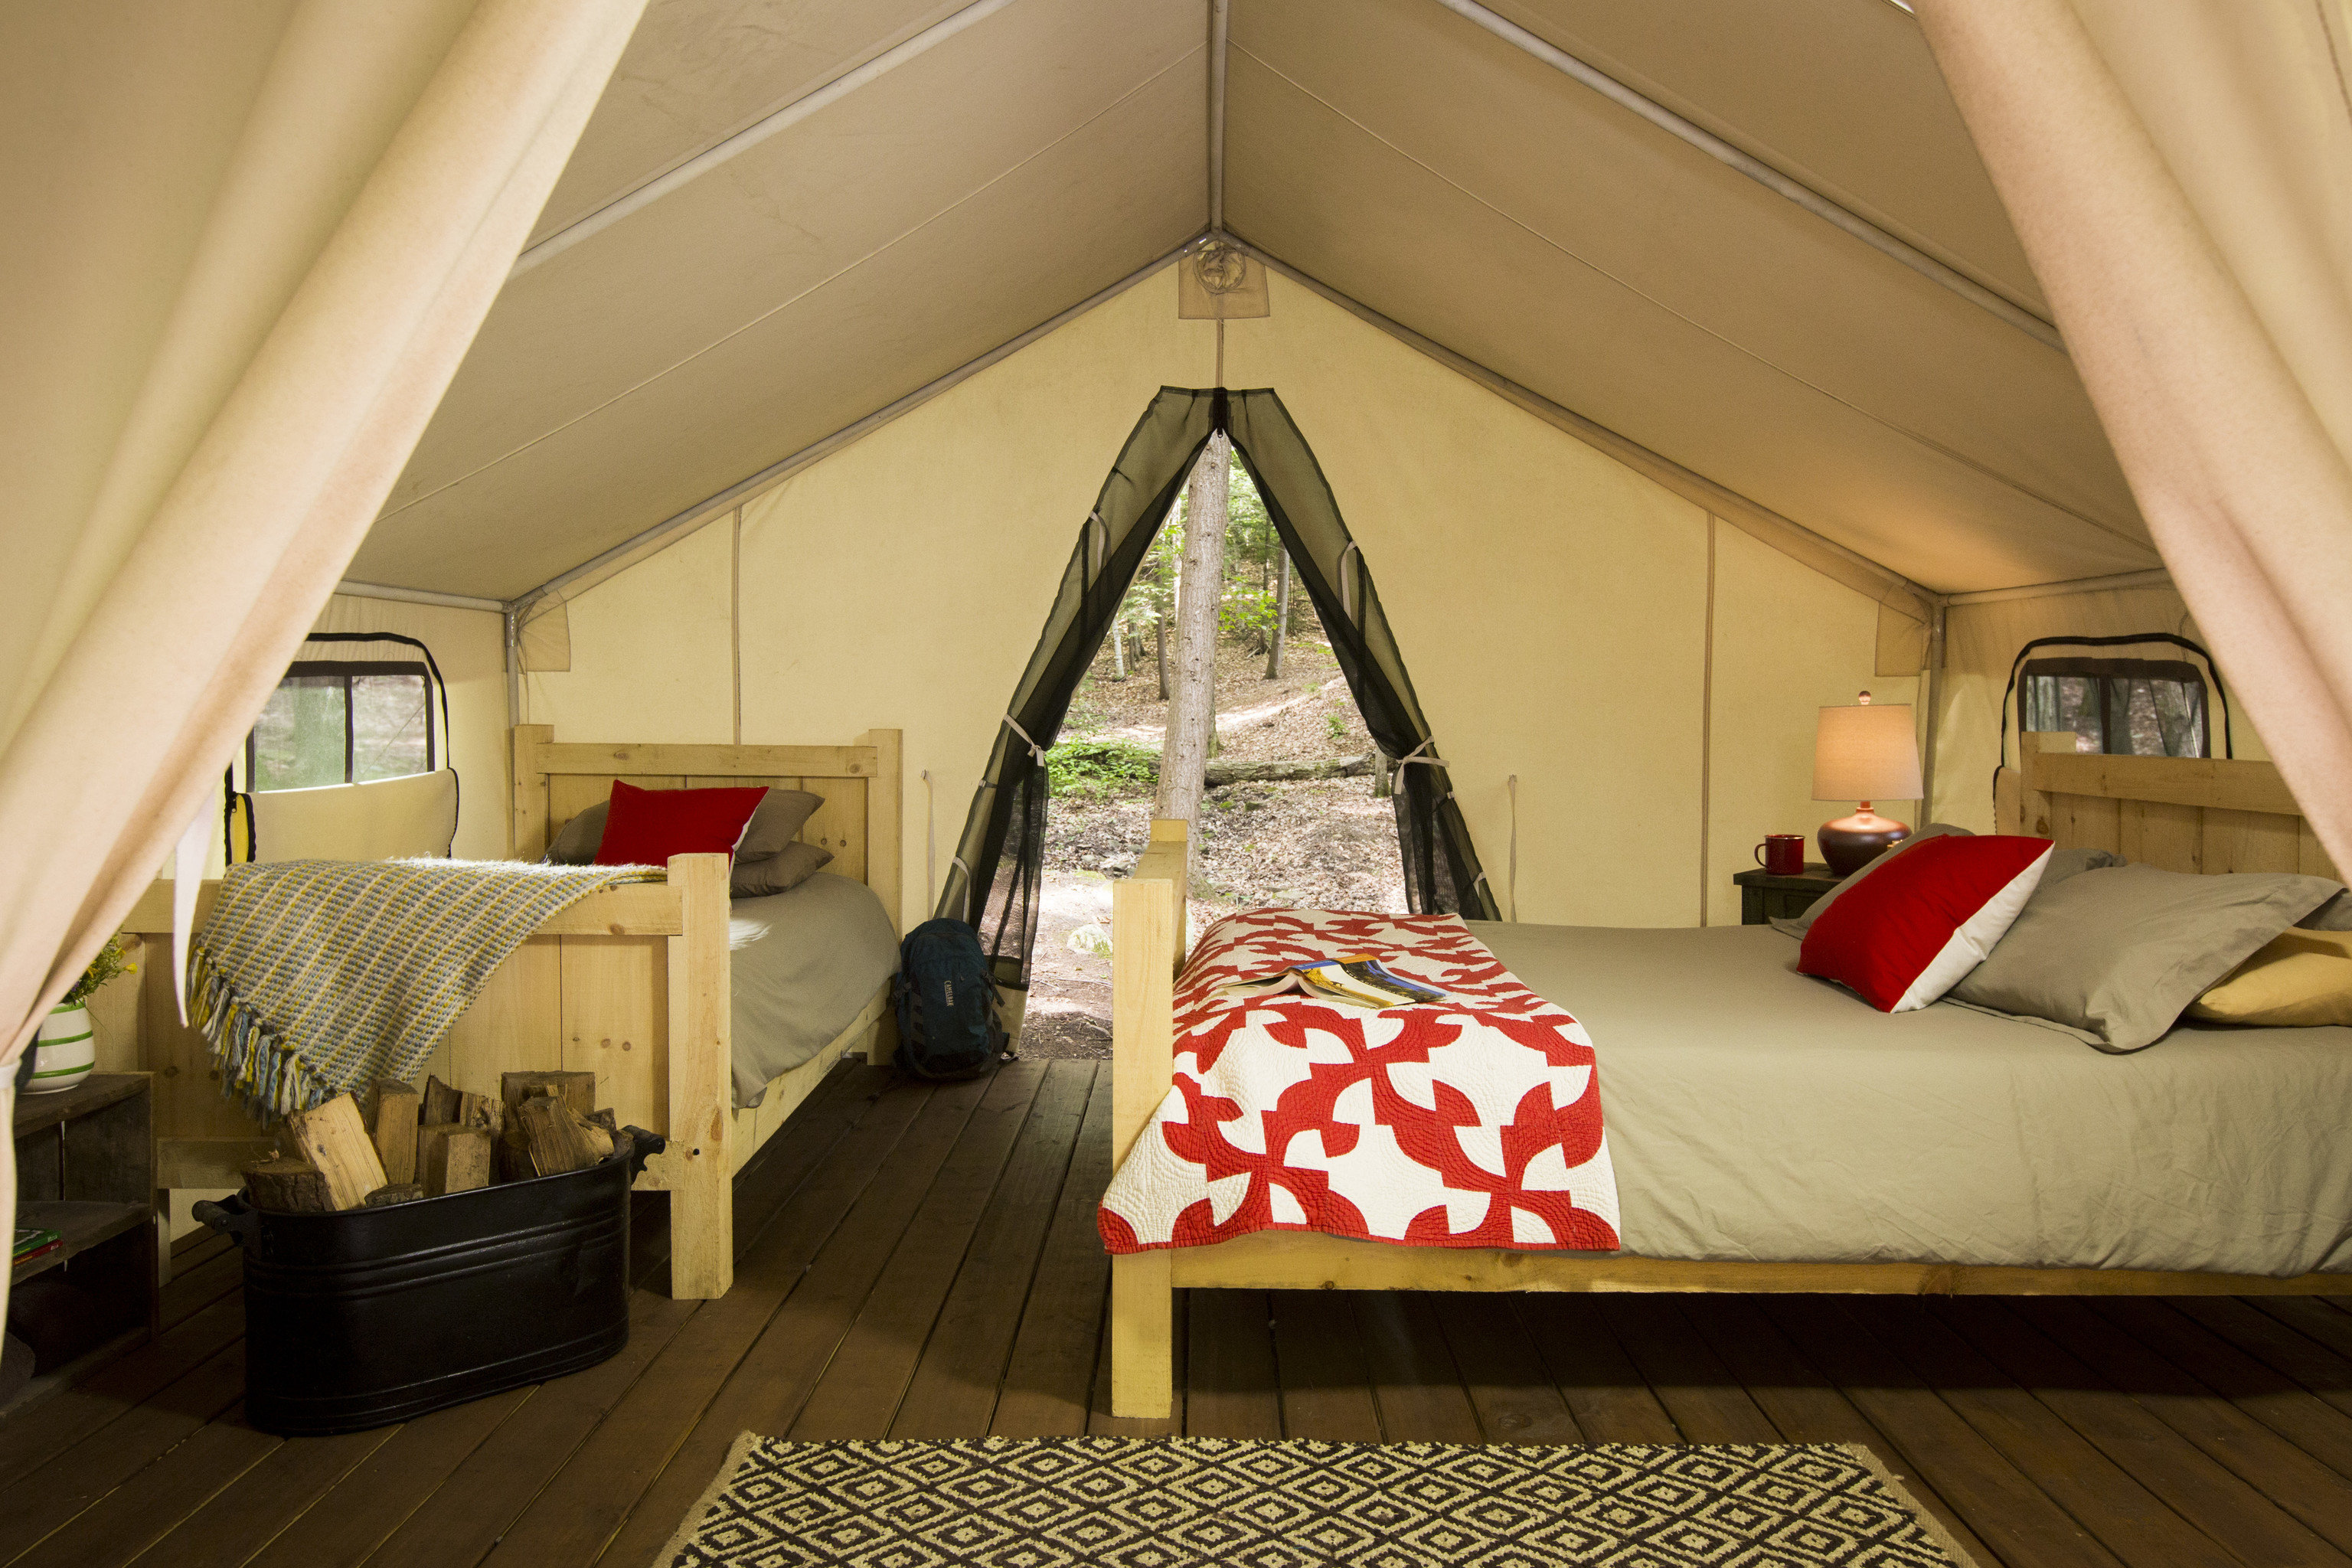 Glamping Outdoors + Adventure Weekend Getaways indoor floor room ceiling Living interior design Bedroom home bed window house Suite estate furniture daylighting attic area